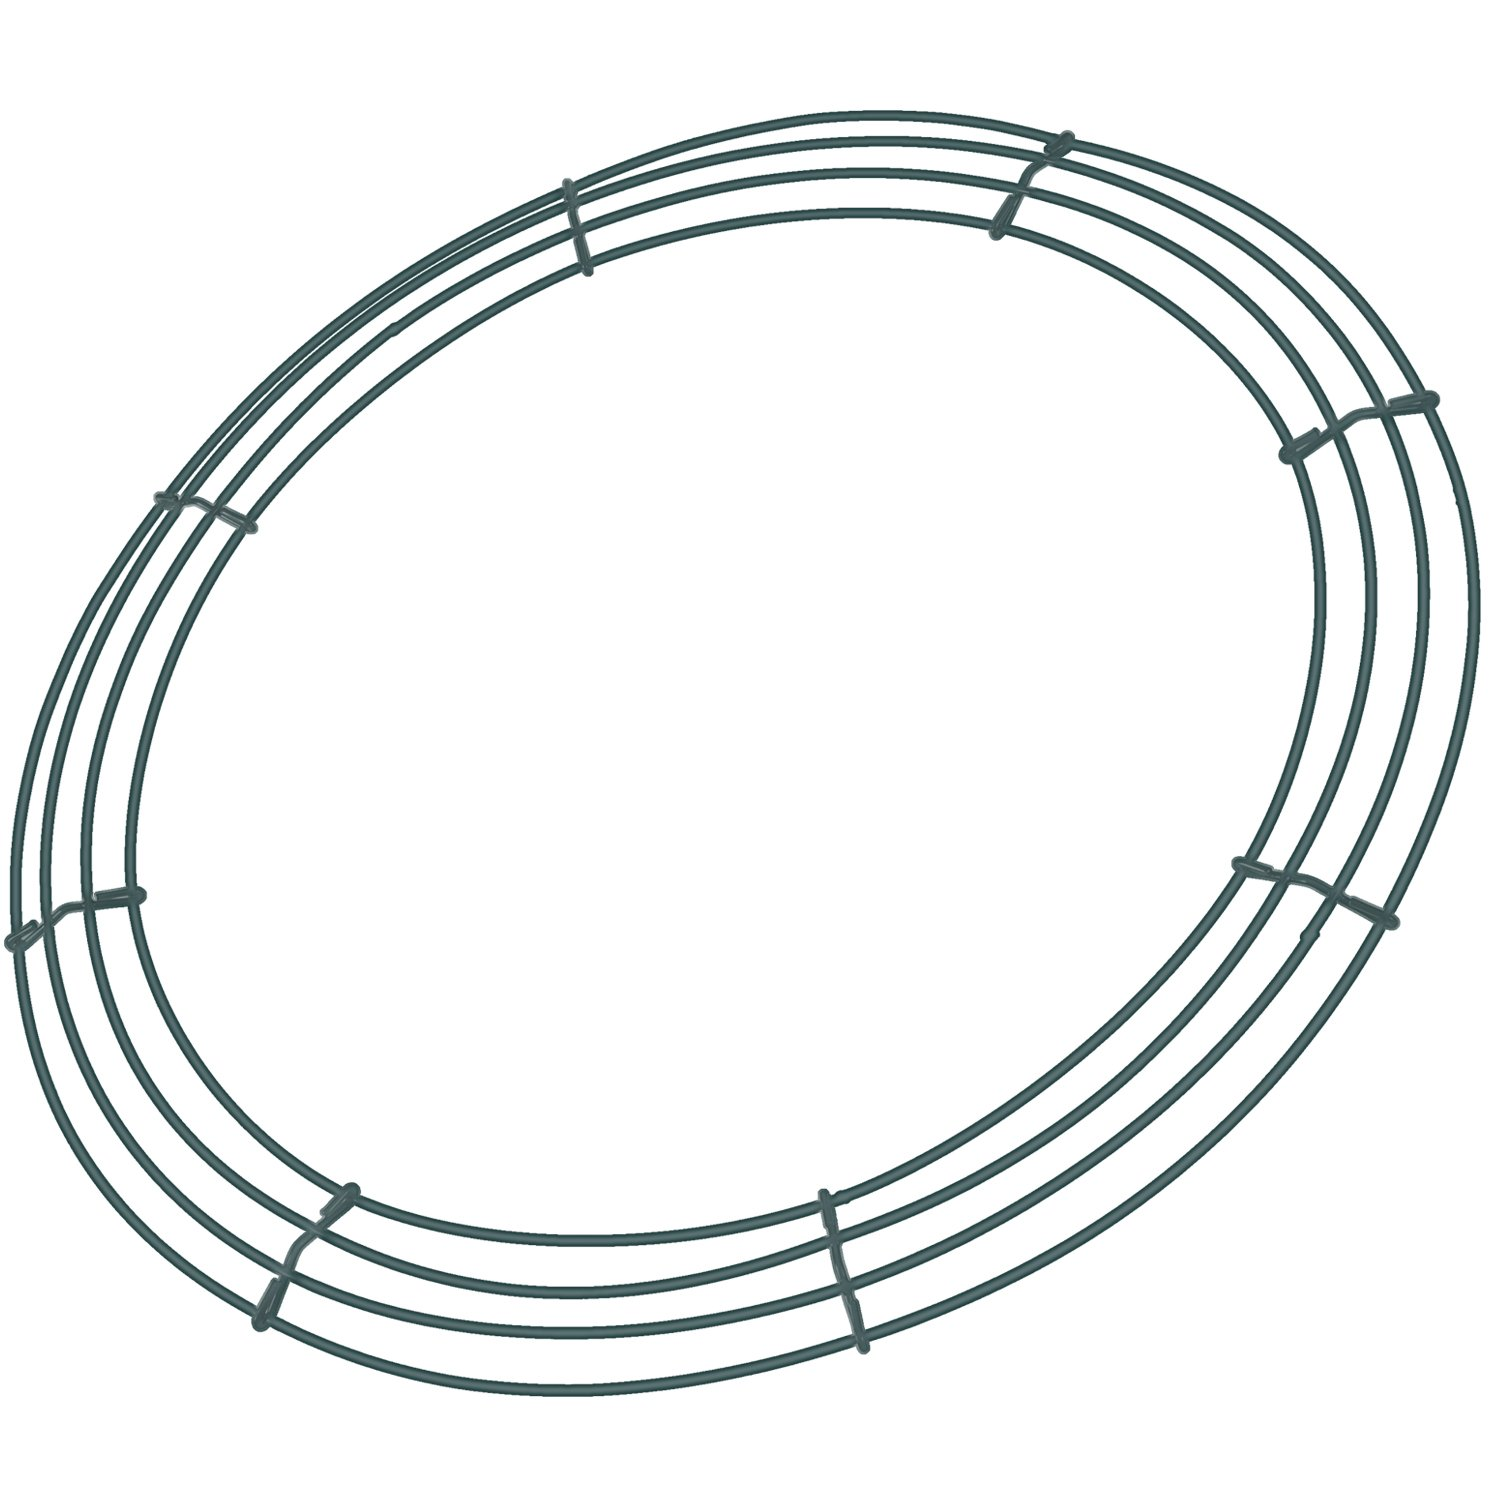 Sumind 2 Pack Wire Wreath Frame Wire Wreath Making Rings Green for ...